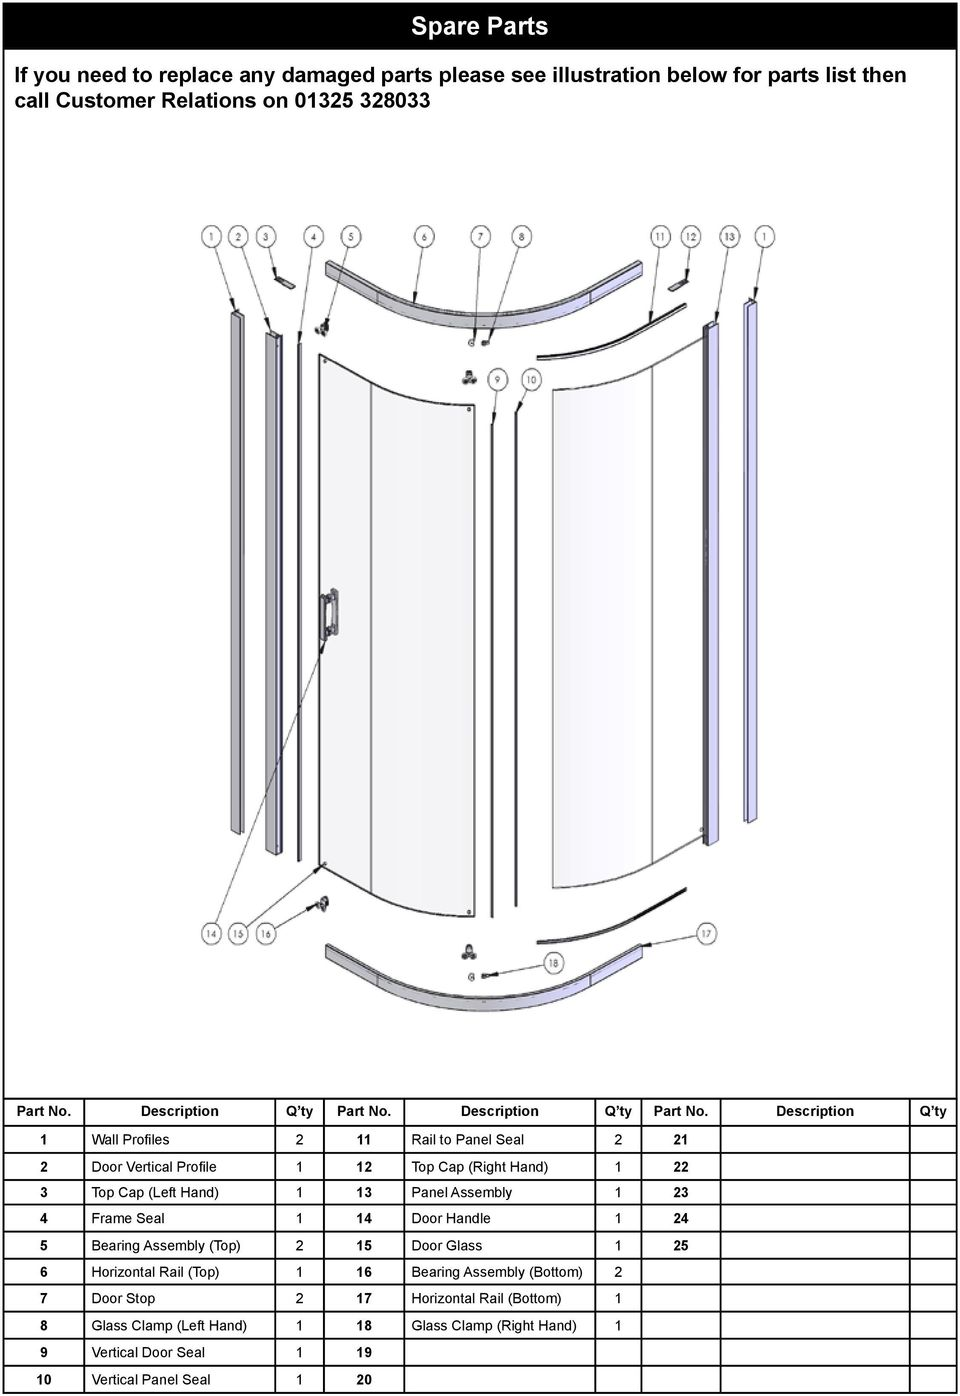 Description Q ty 1 Wall Profiles 2 11 Rail to Panel Seal 2 21 2 Door Vertical Profile 1 12 Top Cap (Right Hand) 1 22 3 Top Cap (Left Hand) 1 13 Panel Assembly 1 23 4